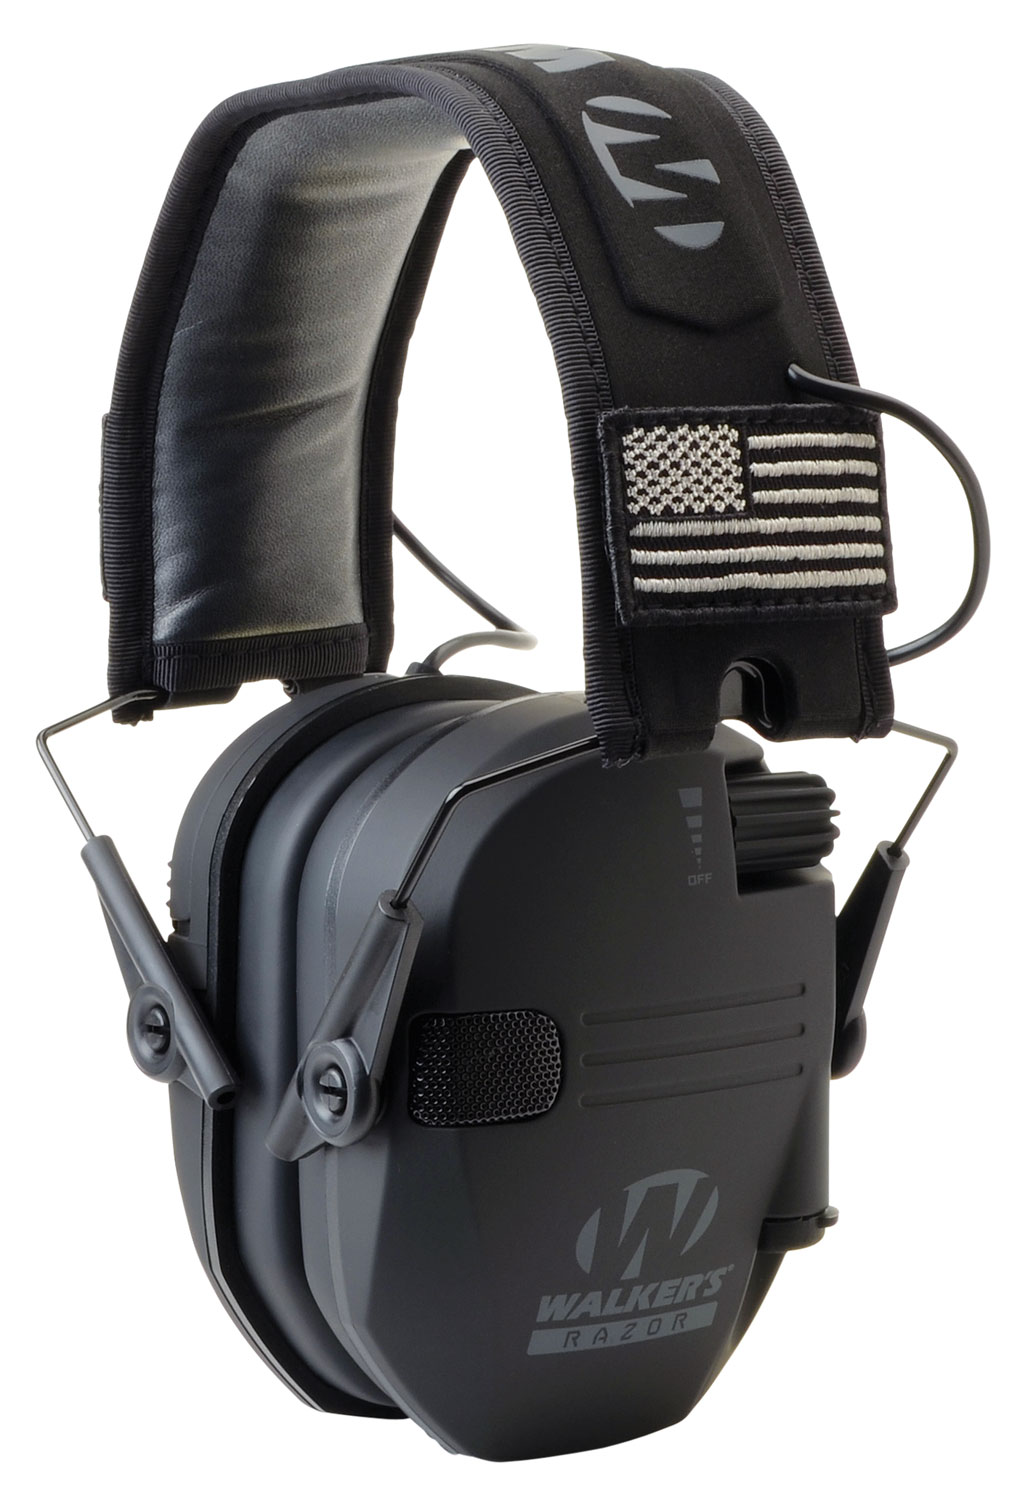 WALKERS MUFF ELECTRONIC RAZOR SLIM PATRIOT 23dB BLACK